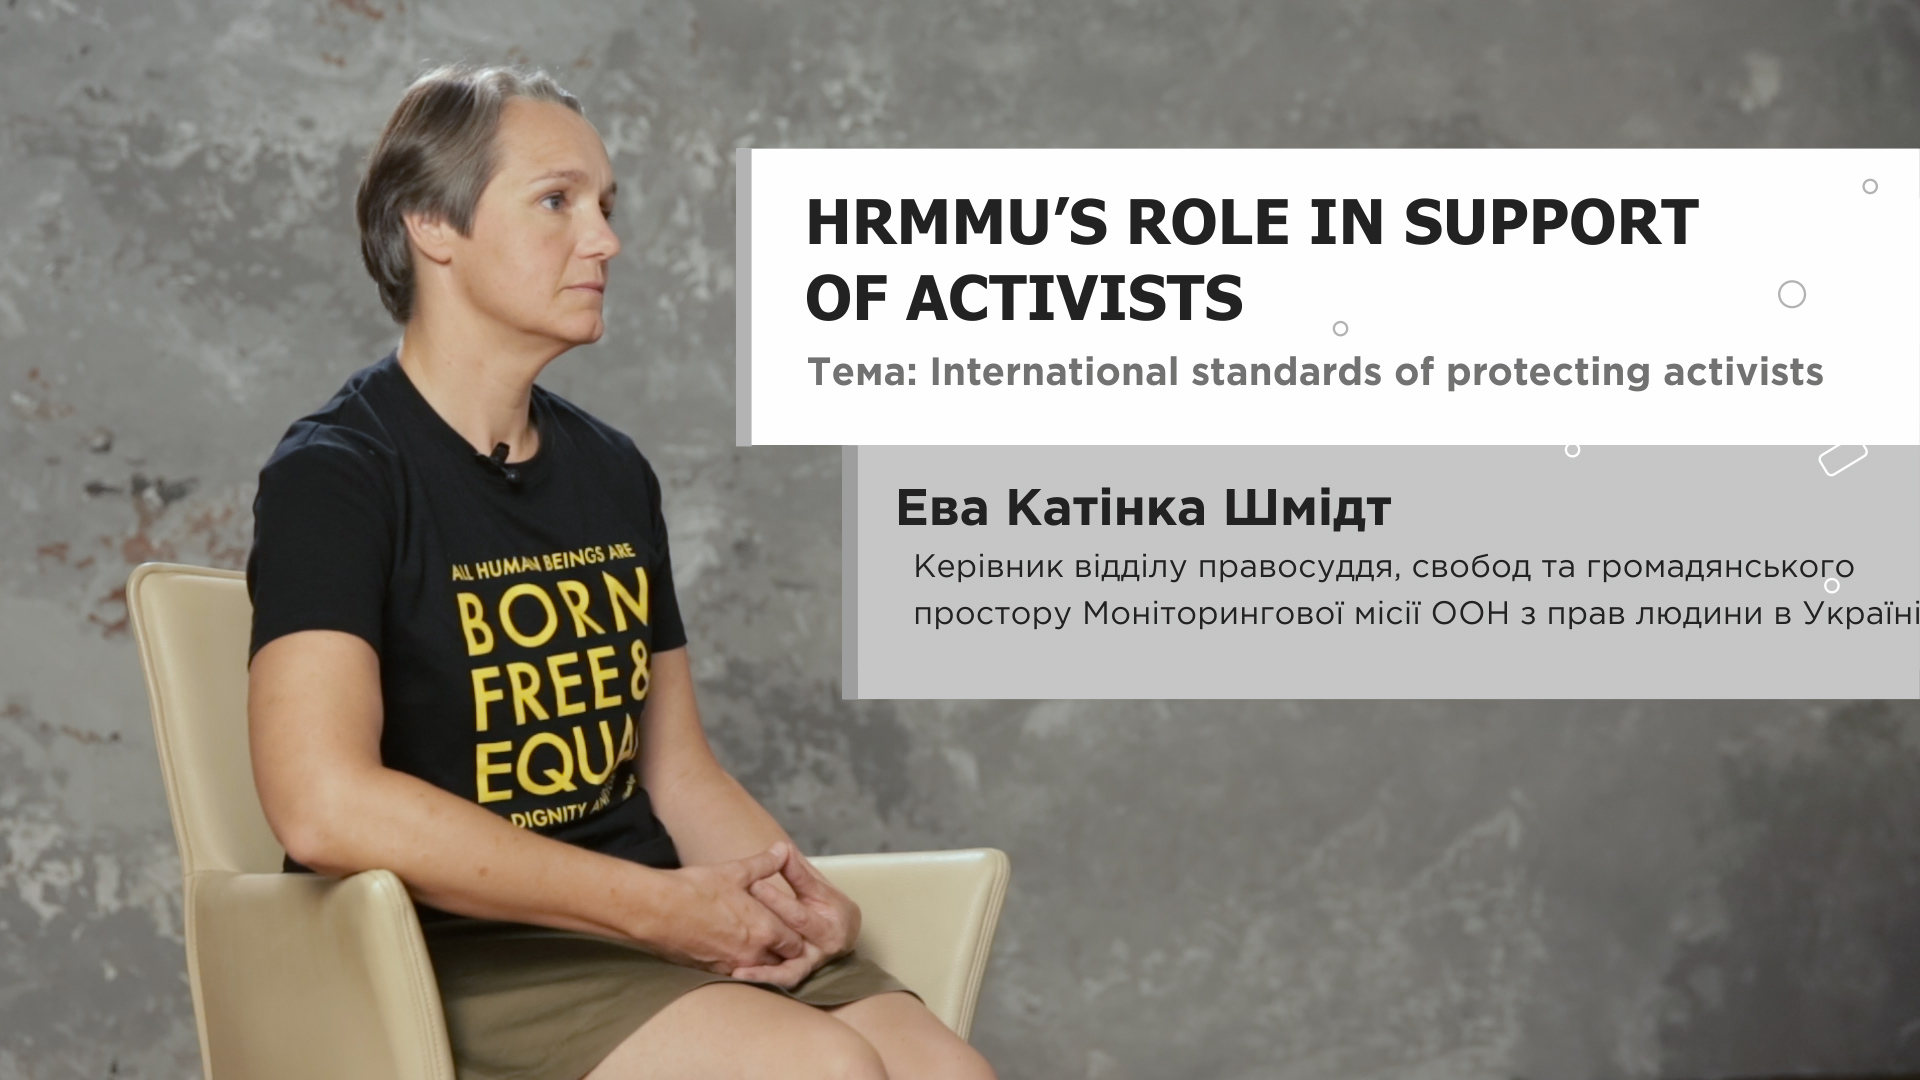 International standards of protecting activists: HRMMU's role in support of activists